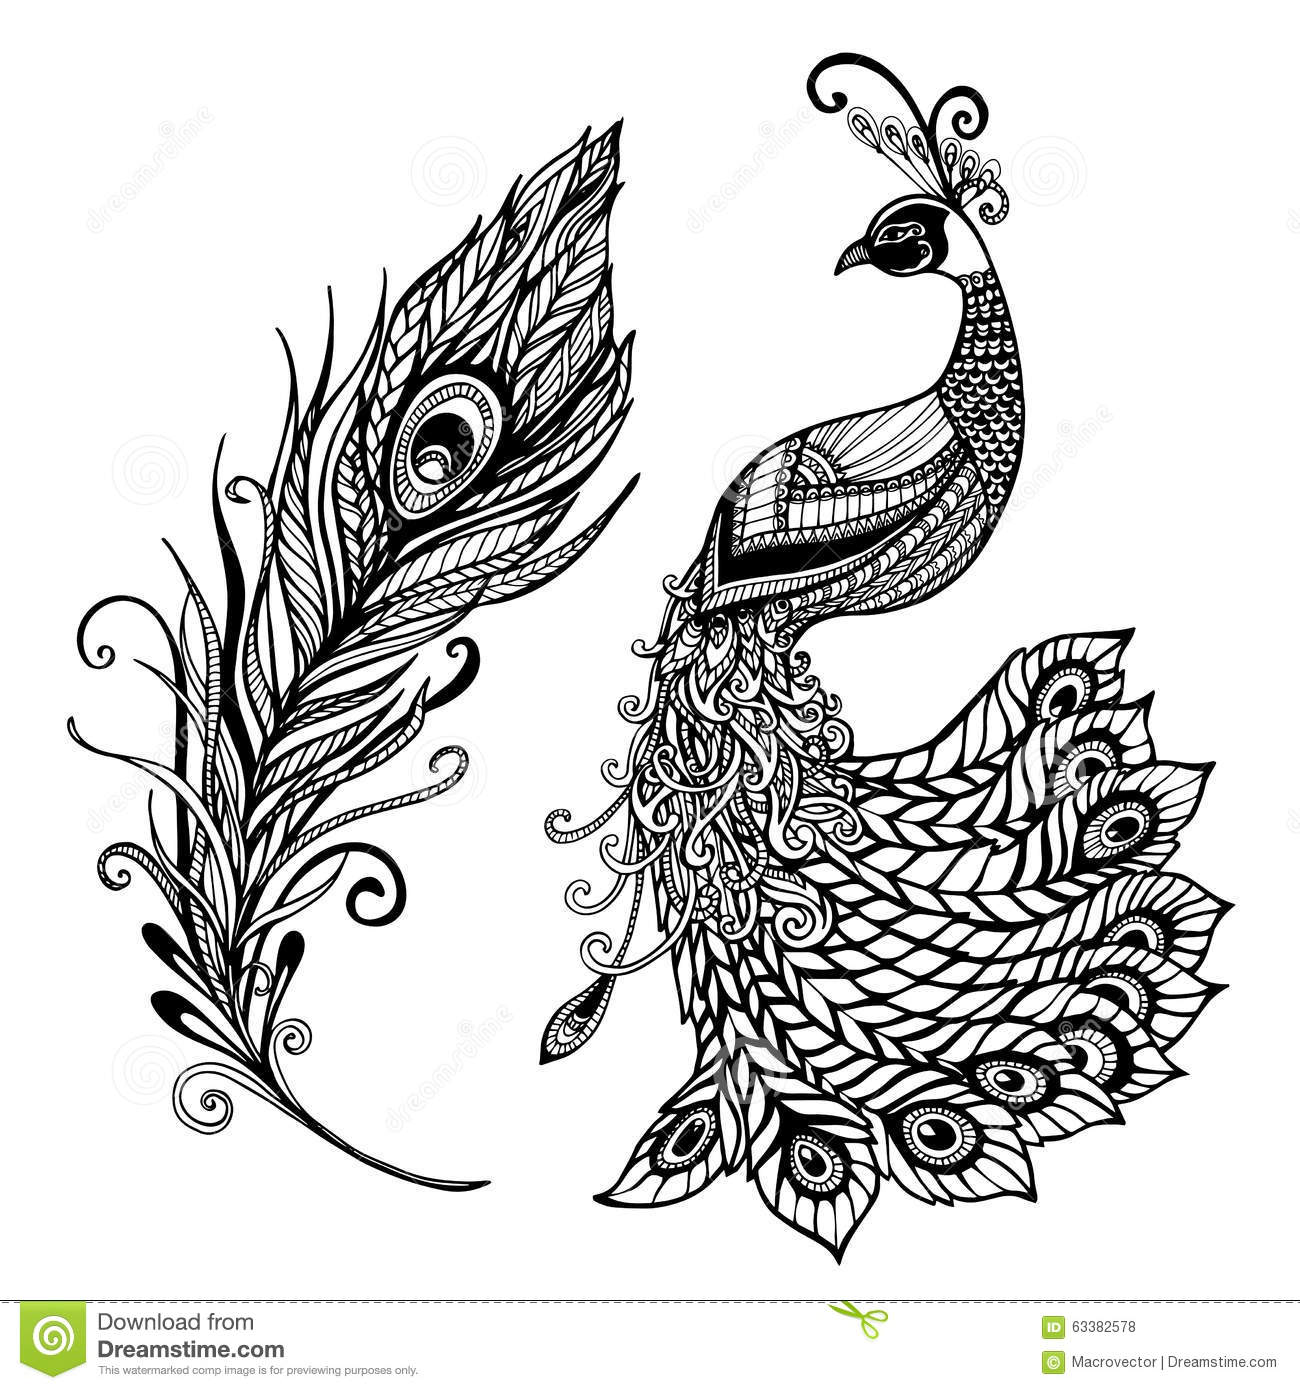 Peacock Feather Design Black Doodle Print Stock Vector